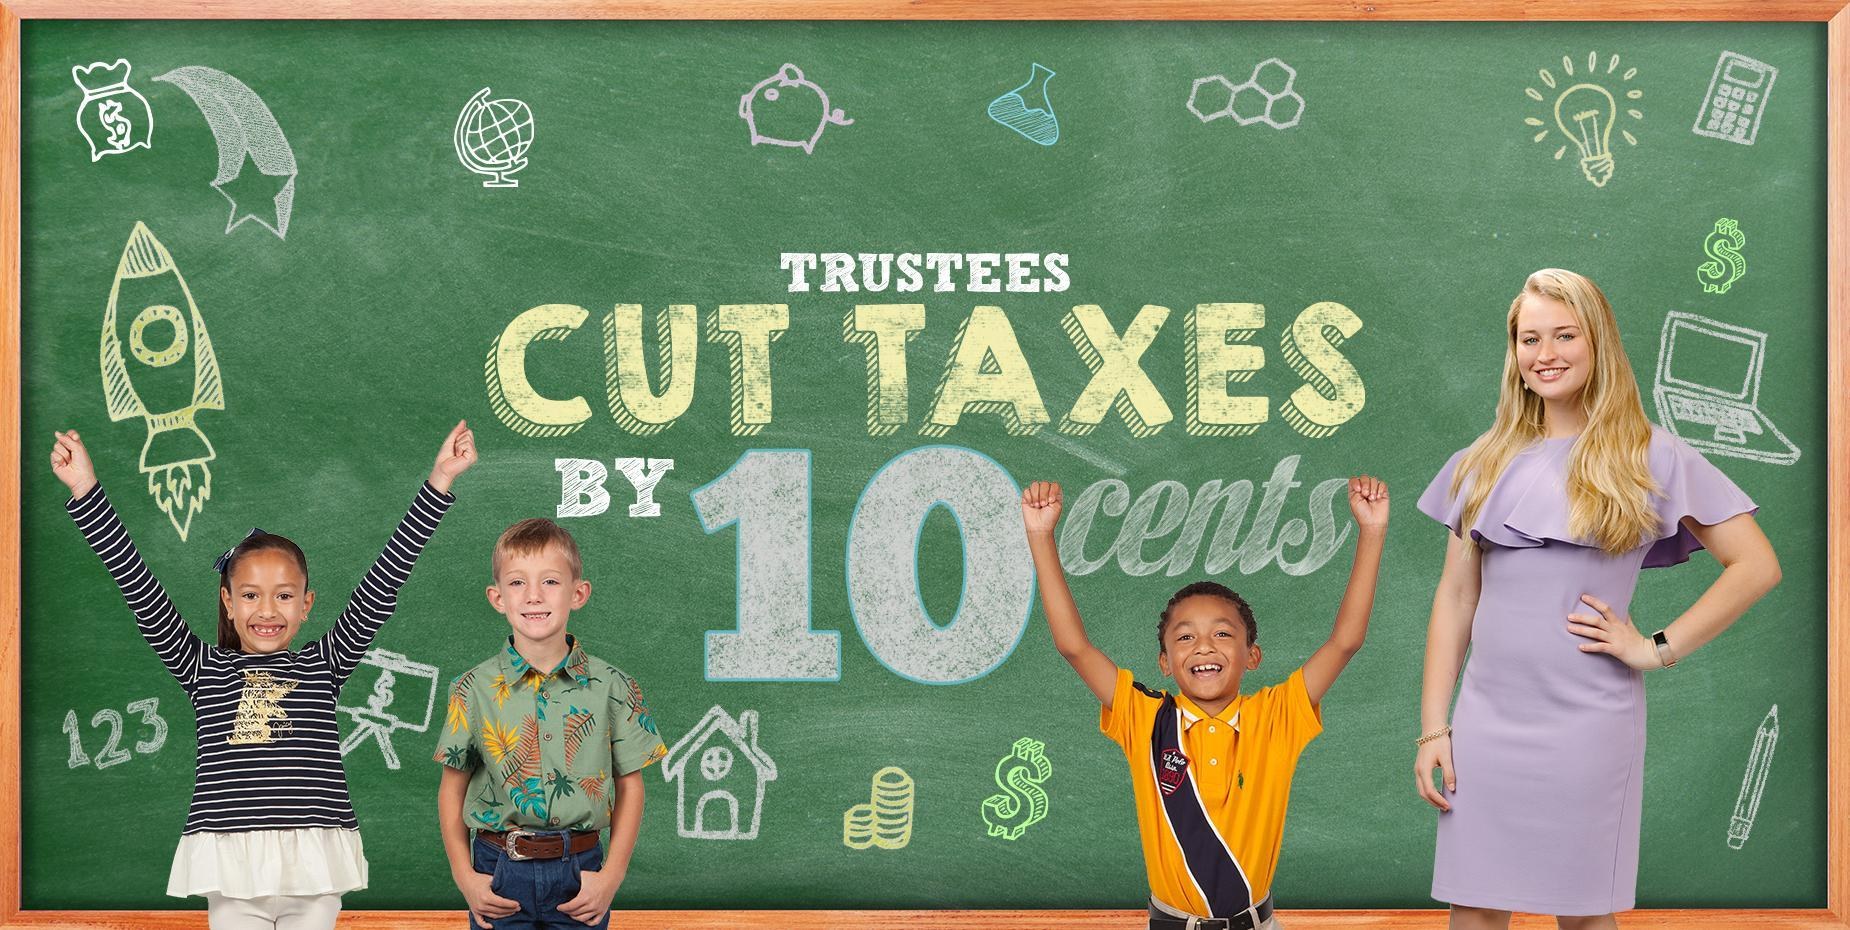 Trustees Cut Taxes by 10 Cents